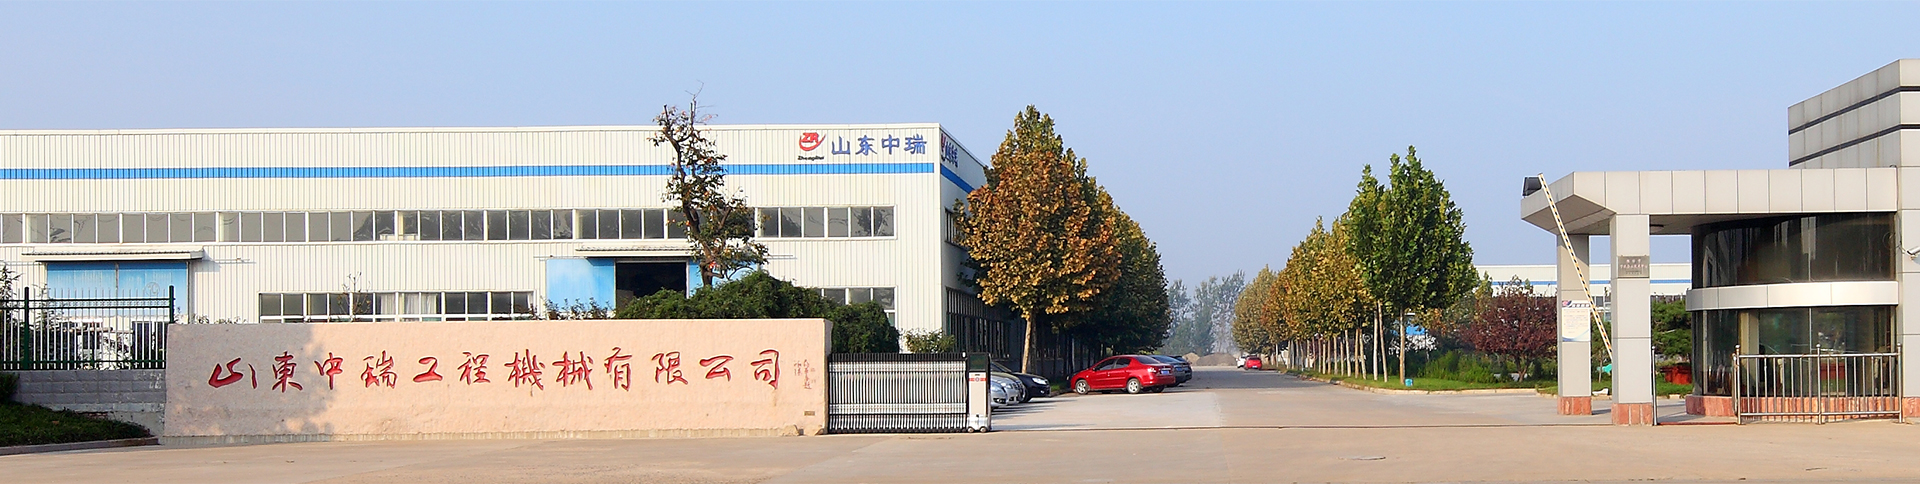 Shandong Zhongrui Construction Co., Ltd.